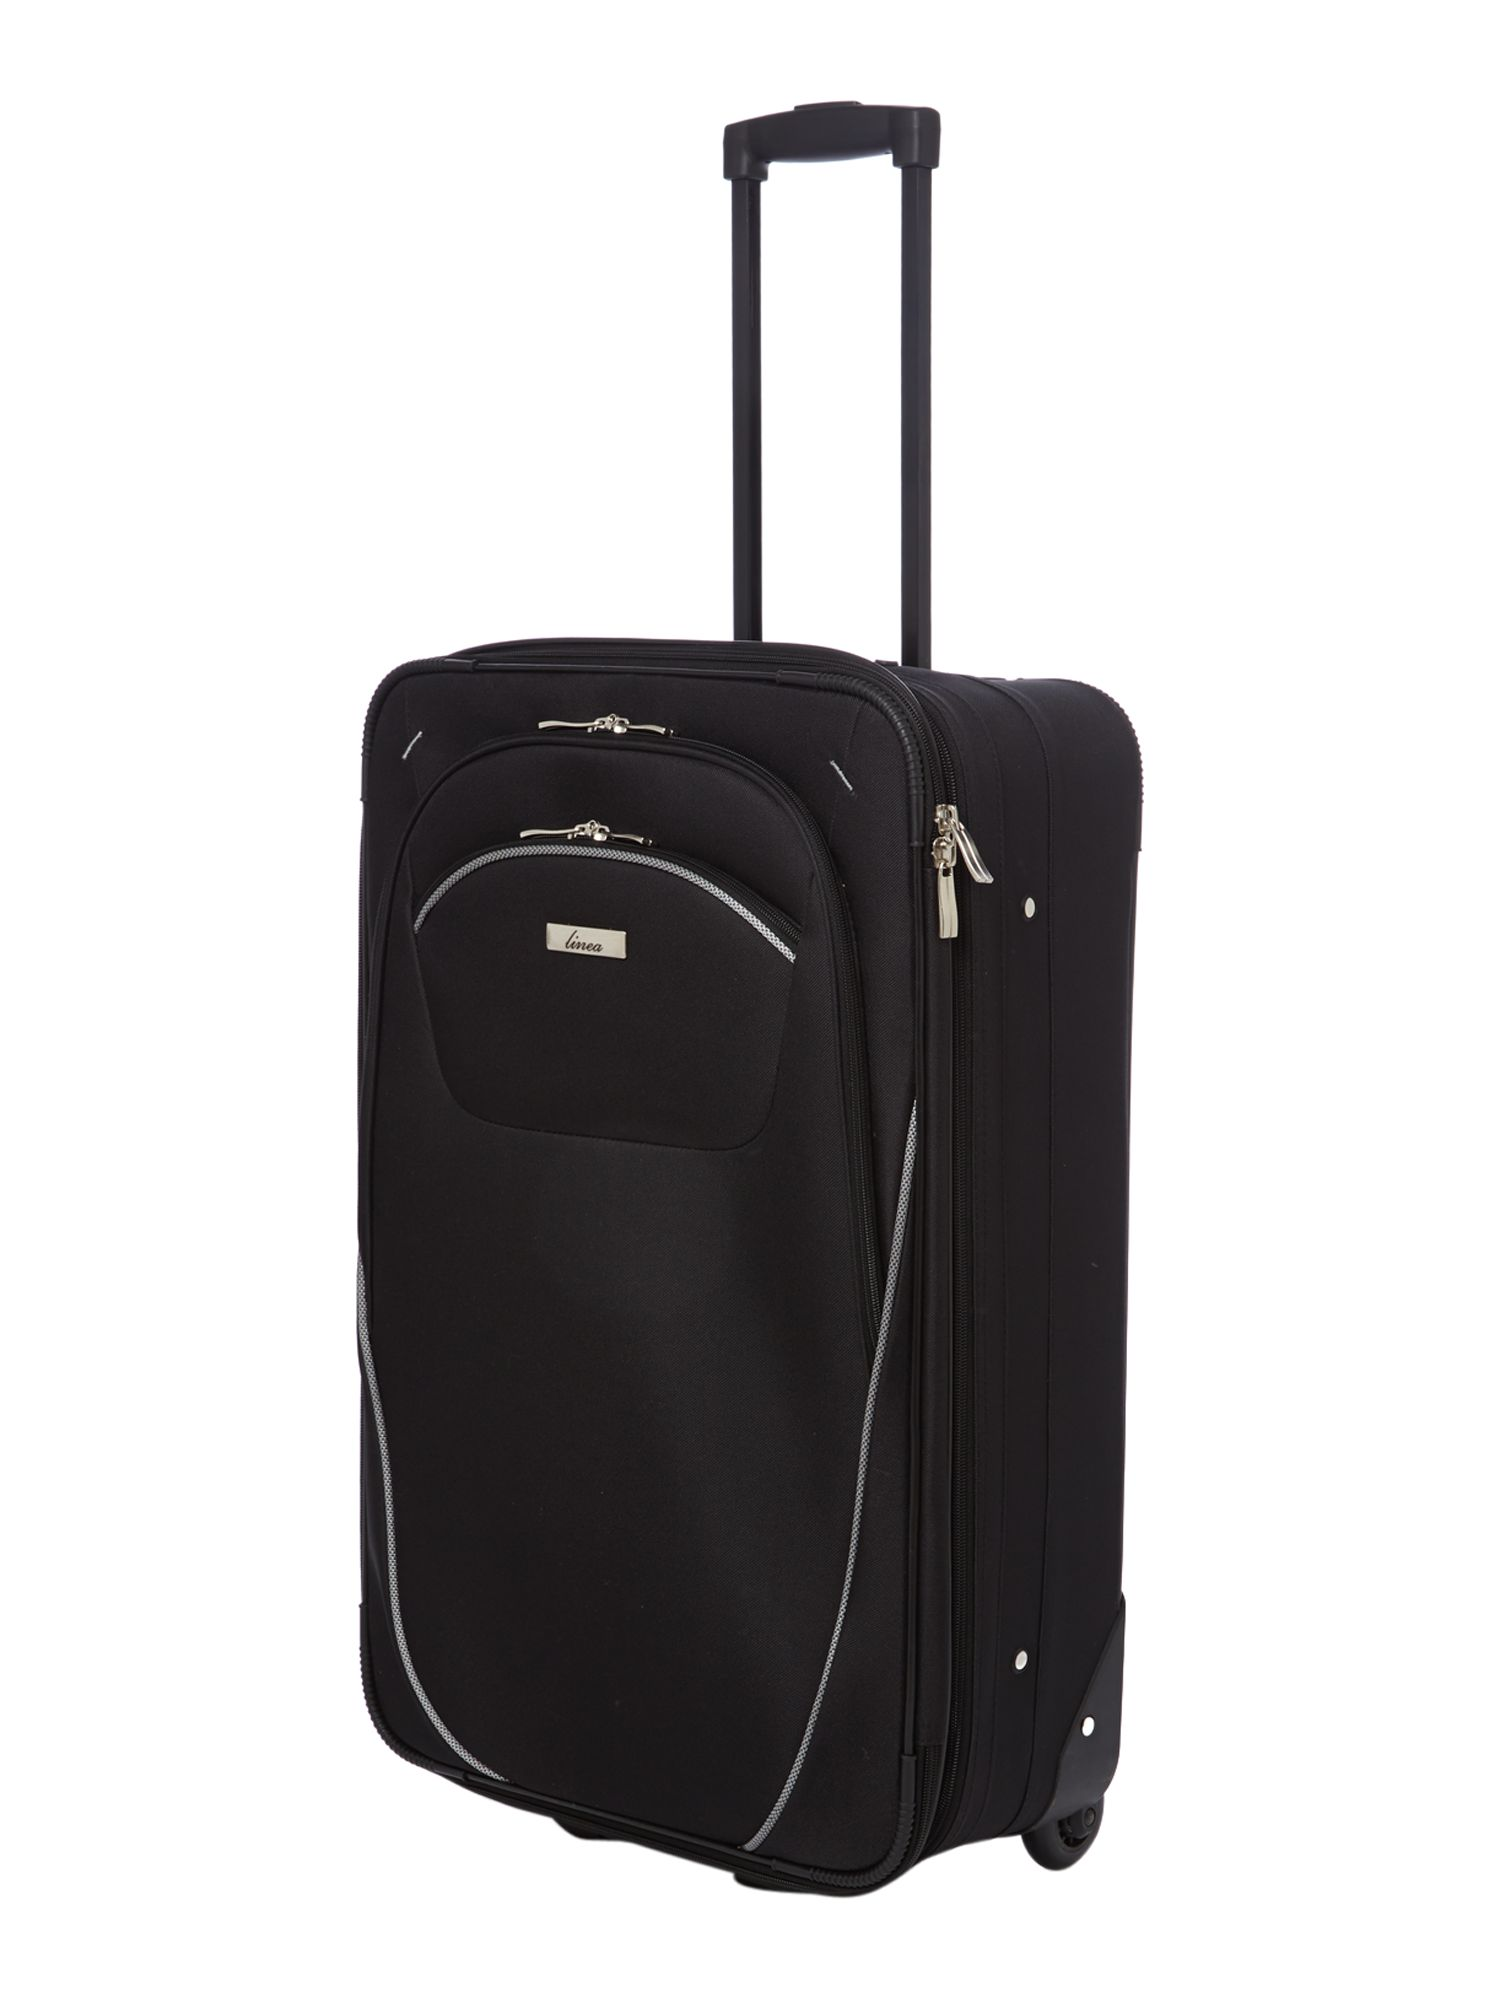 Brixham black luggage range